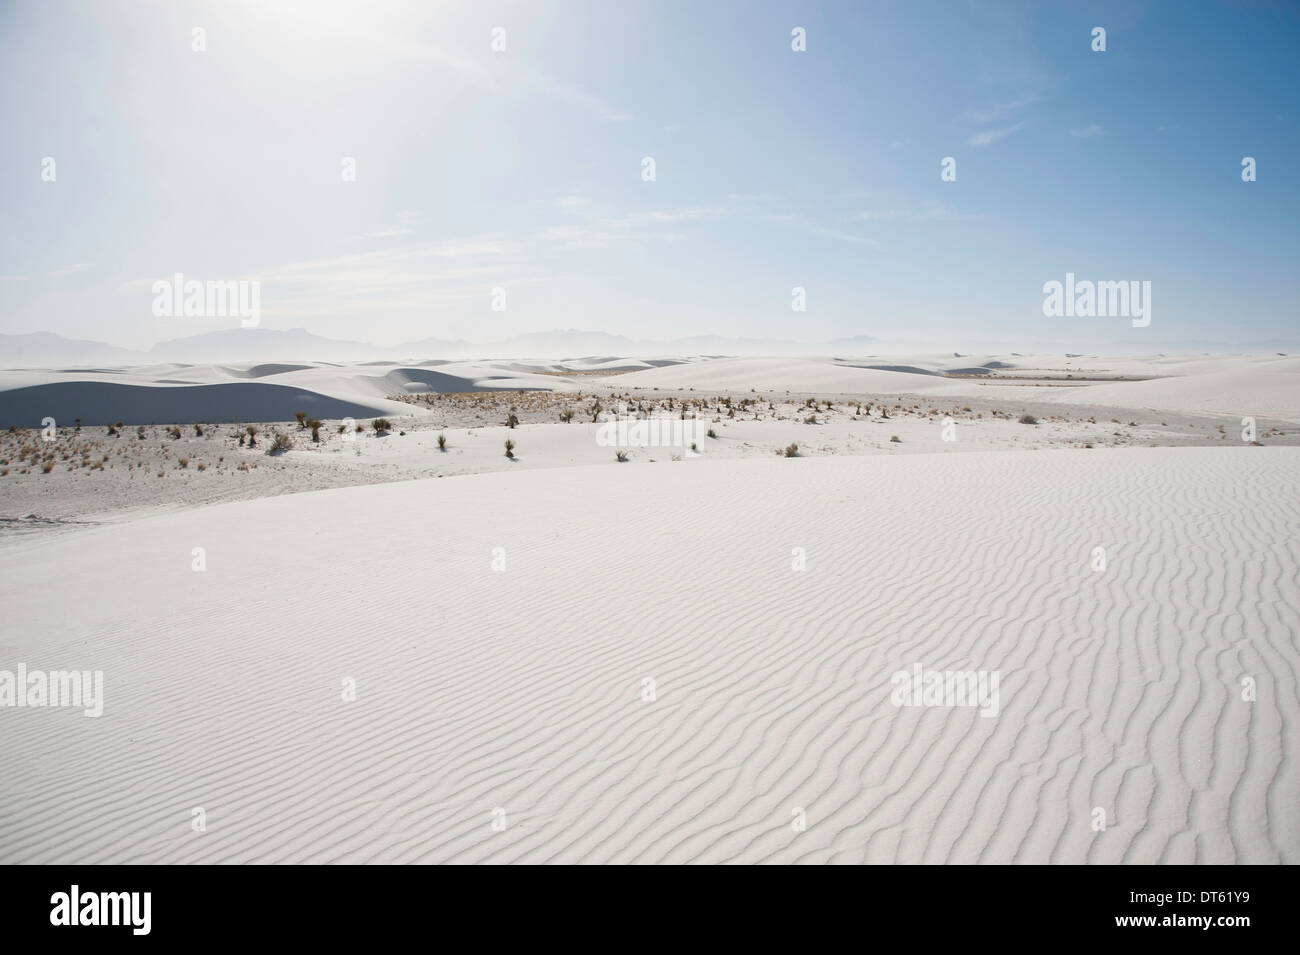 Sand dunes, White sands, New Mexico, USA - Stock Image